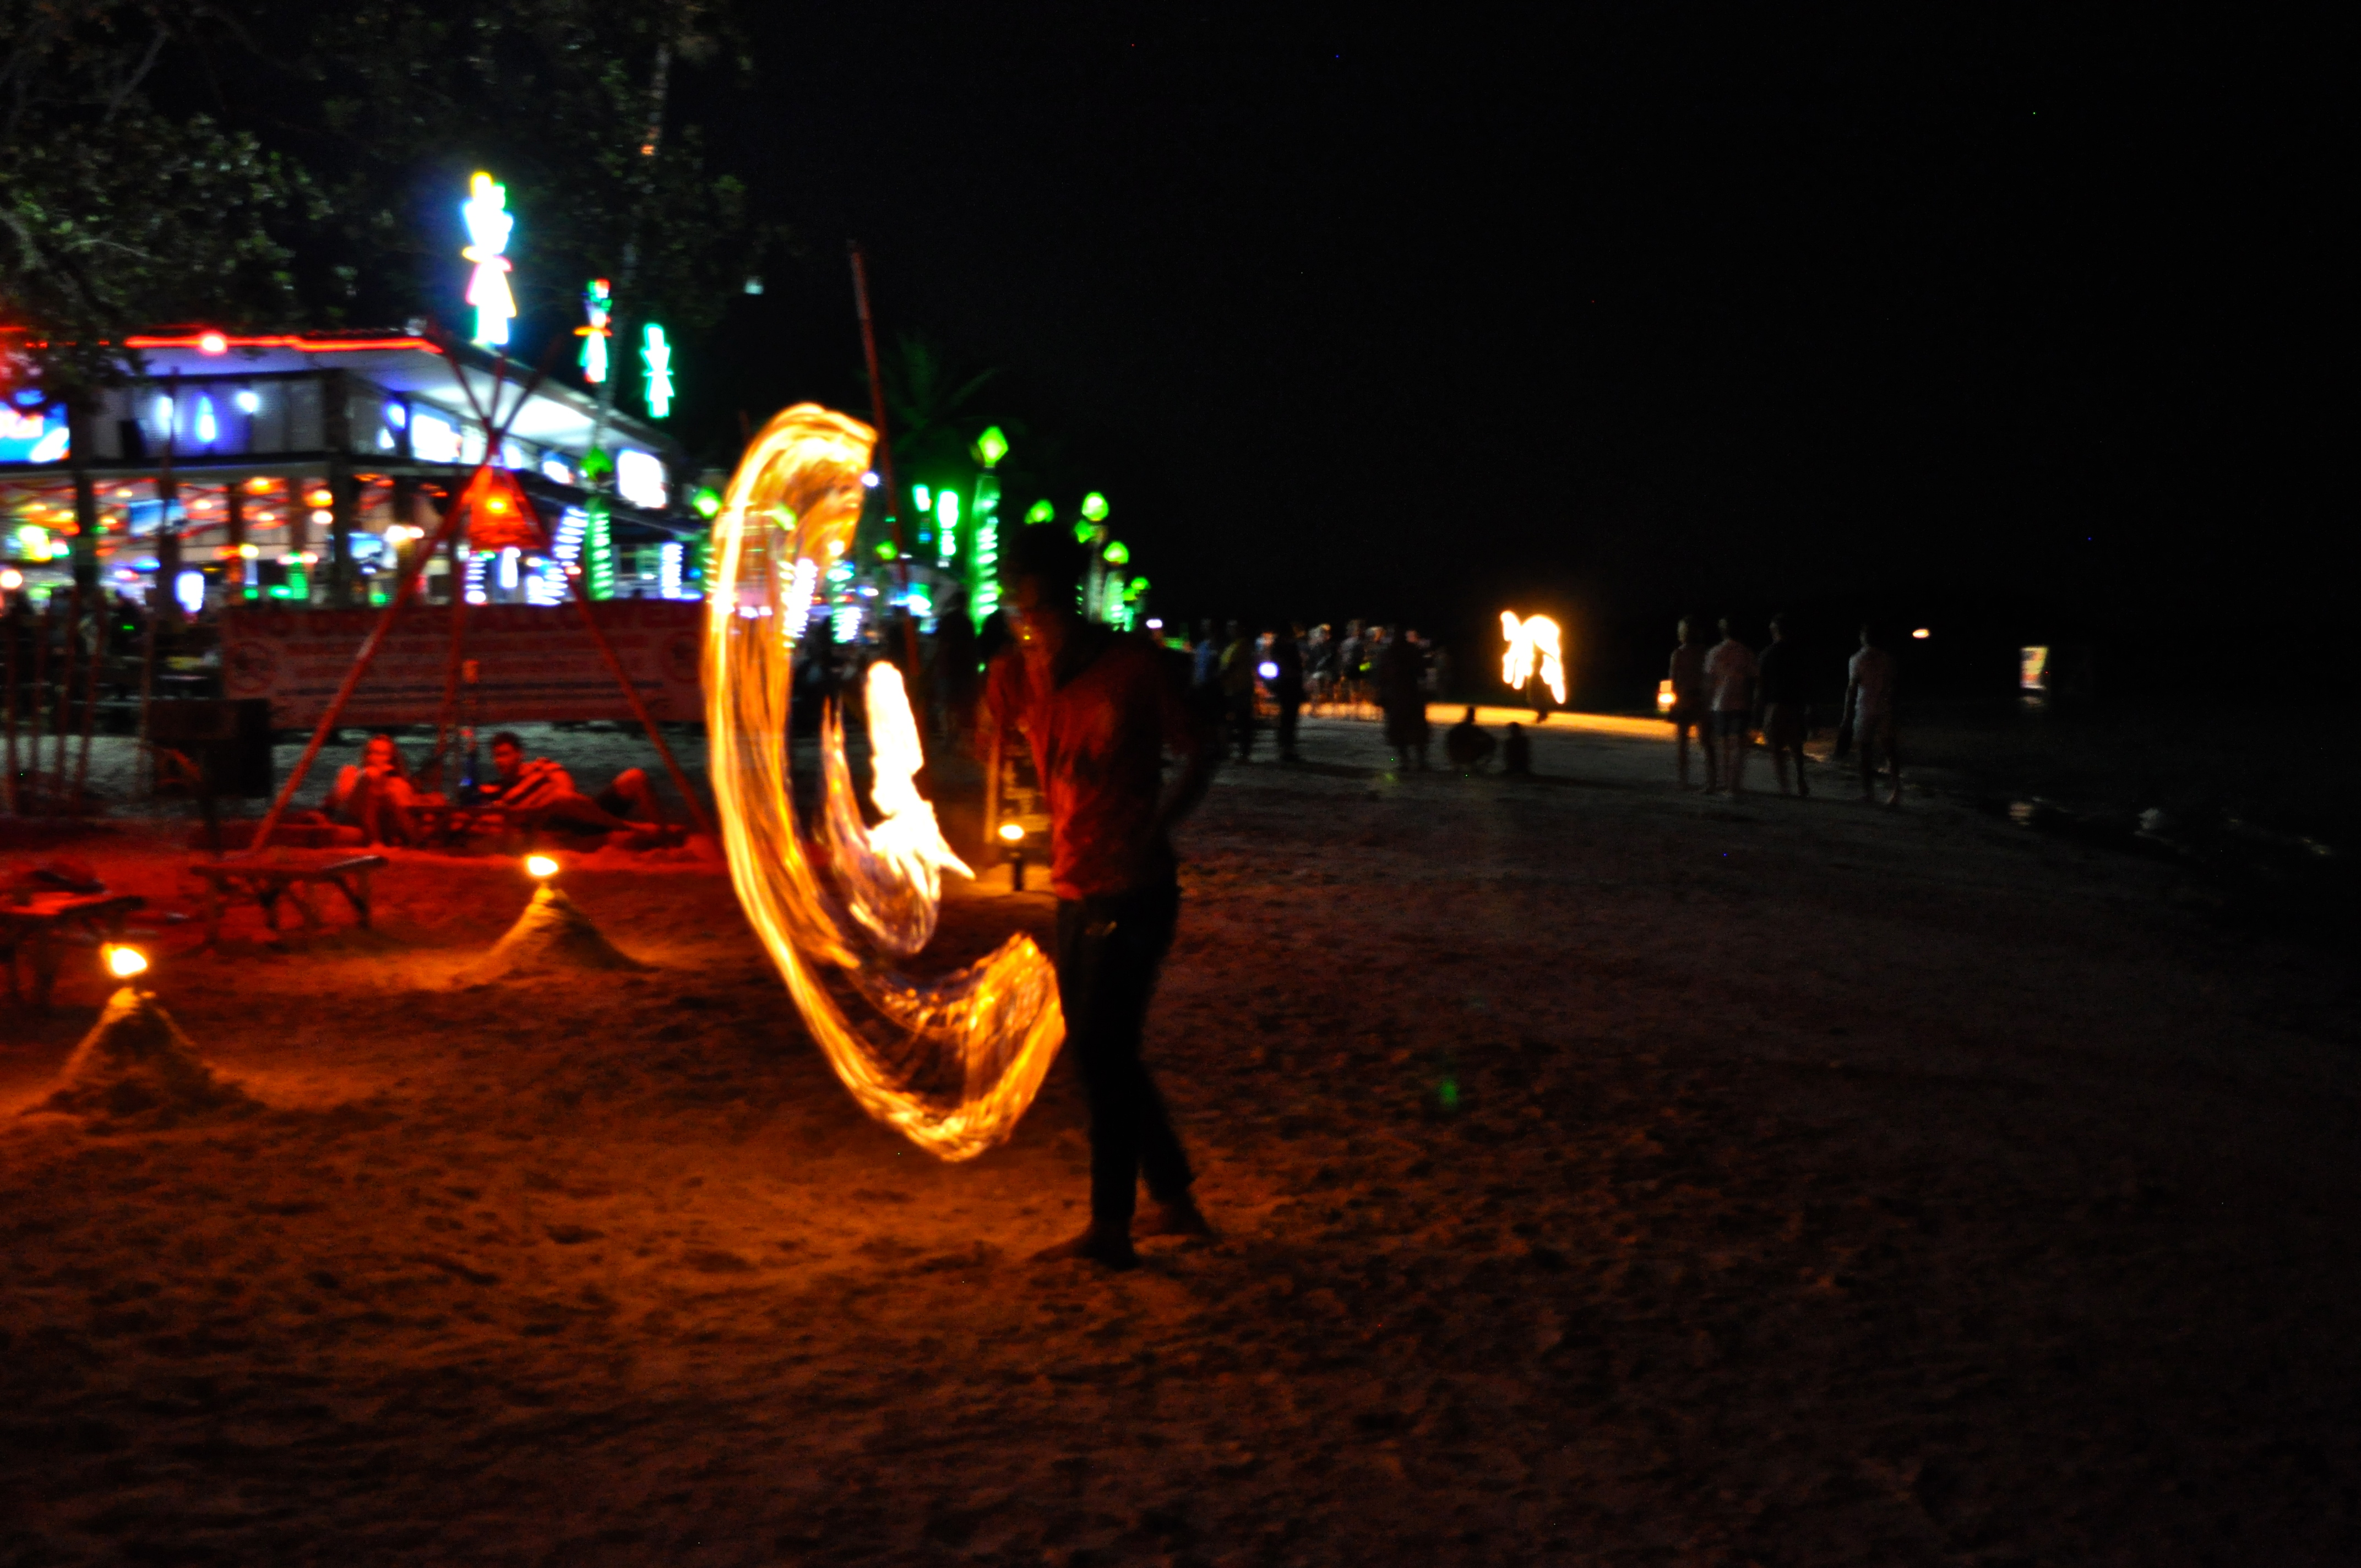 Chaweng beach by night, Thailand